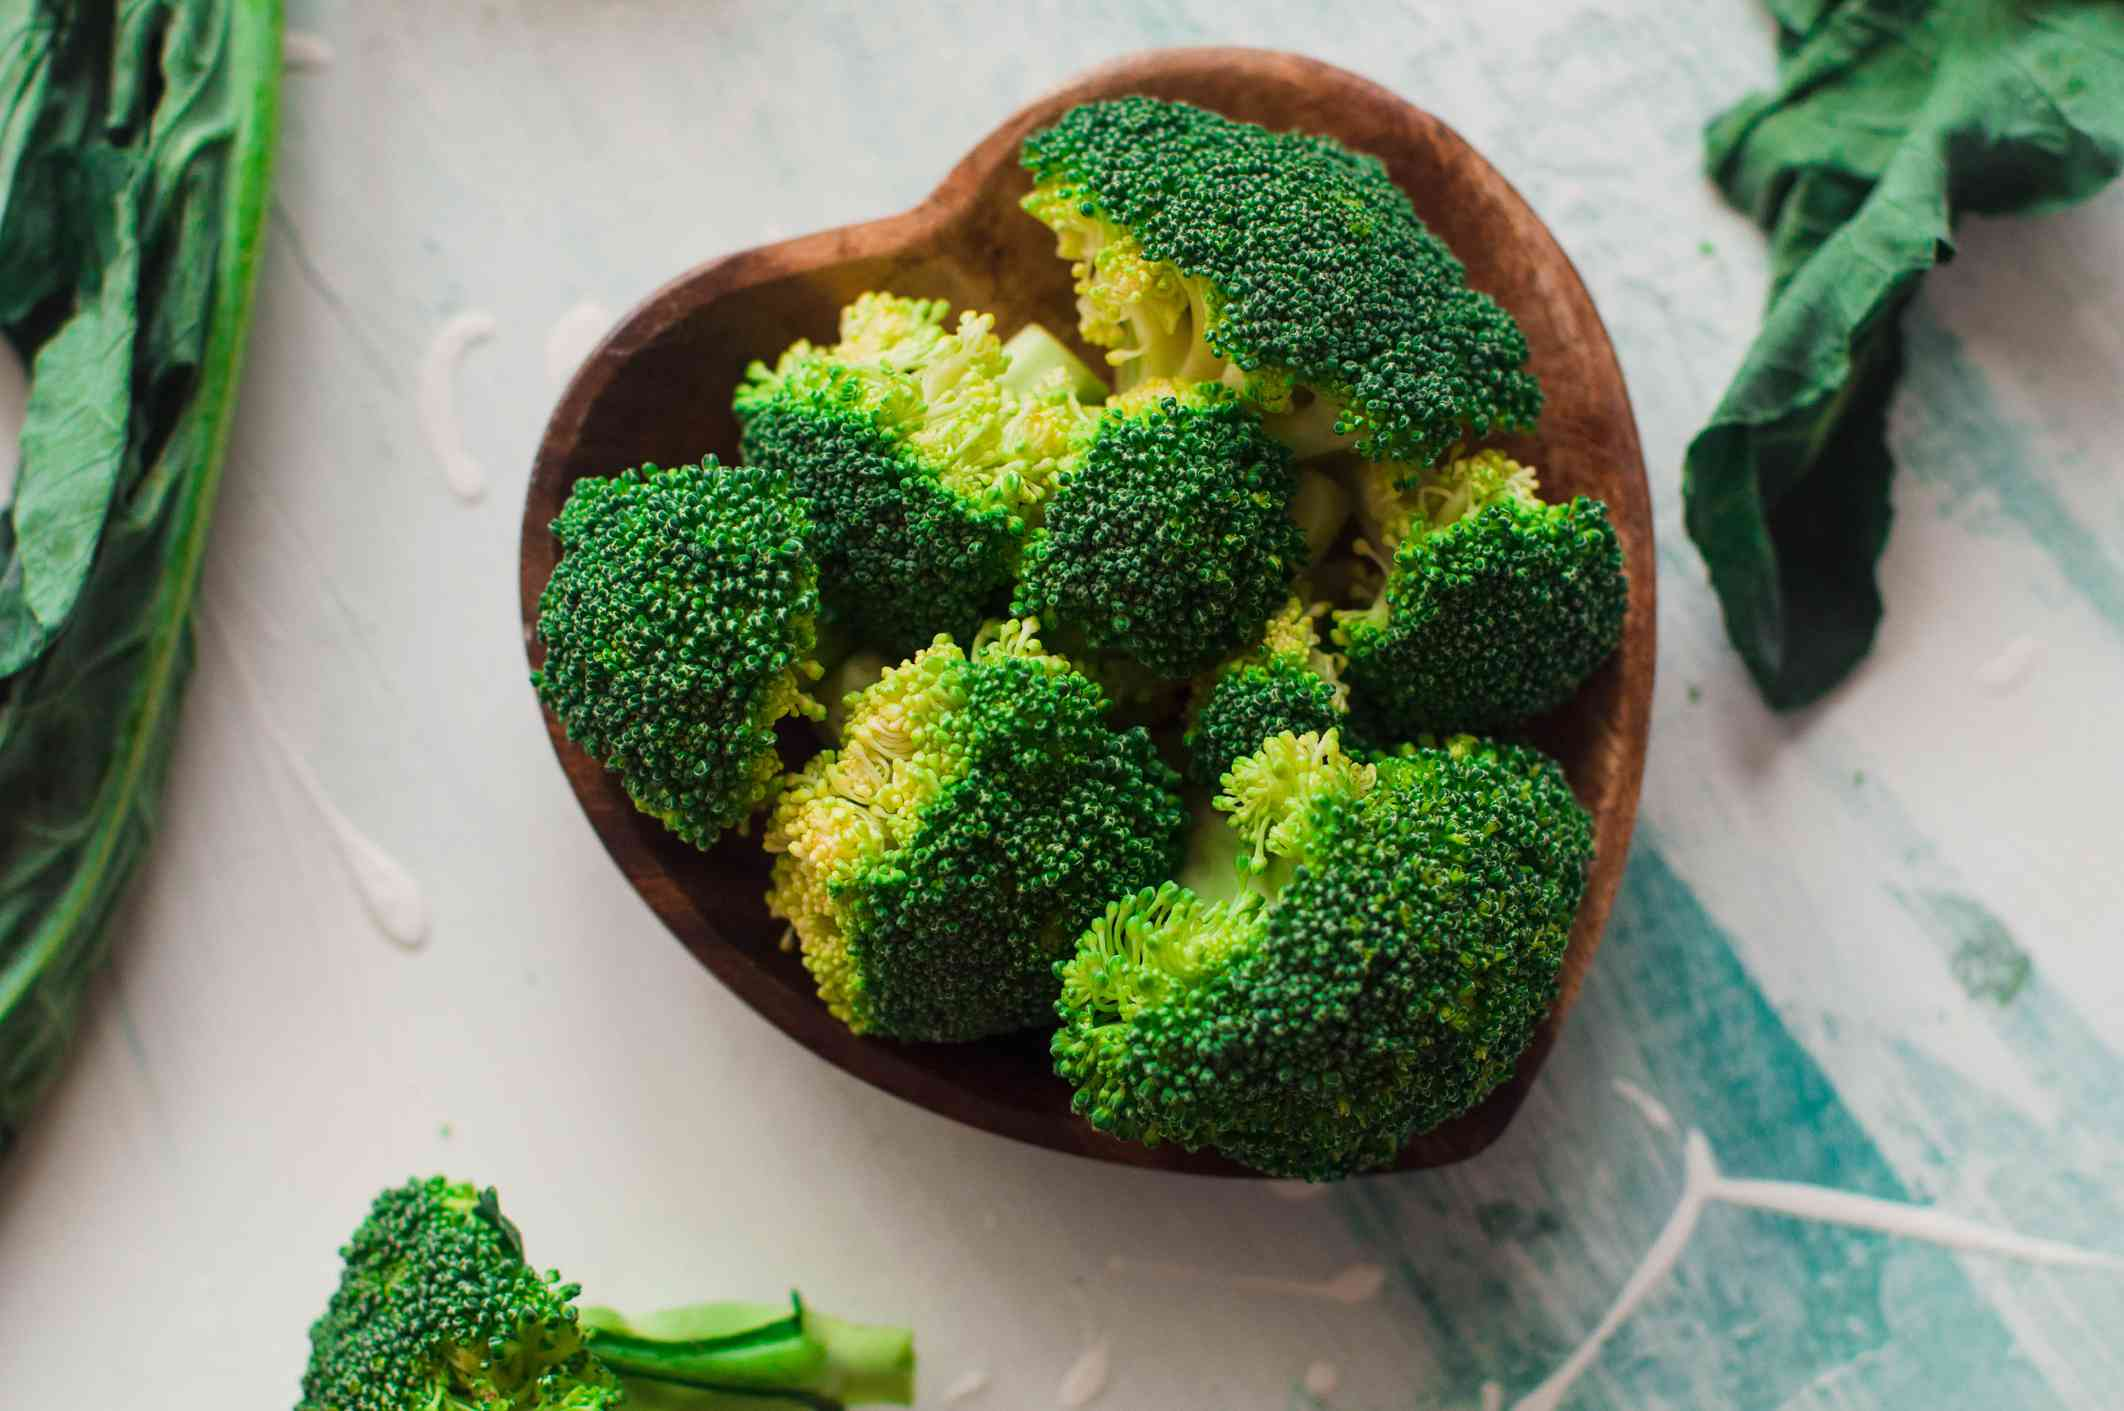 Heart shaped wood bowl filled with broccoli florets.